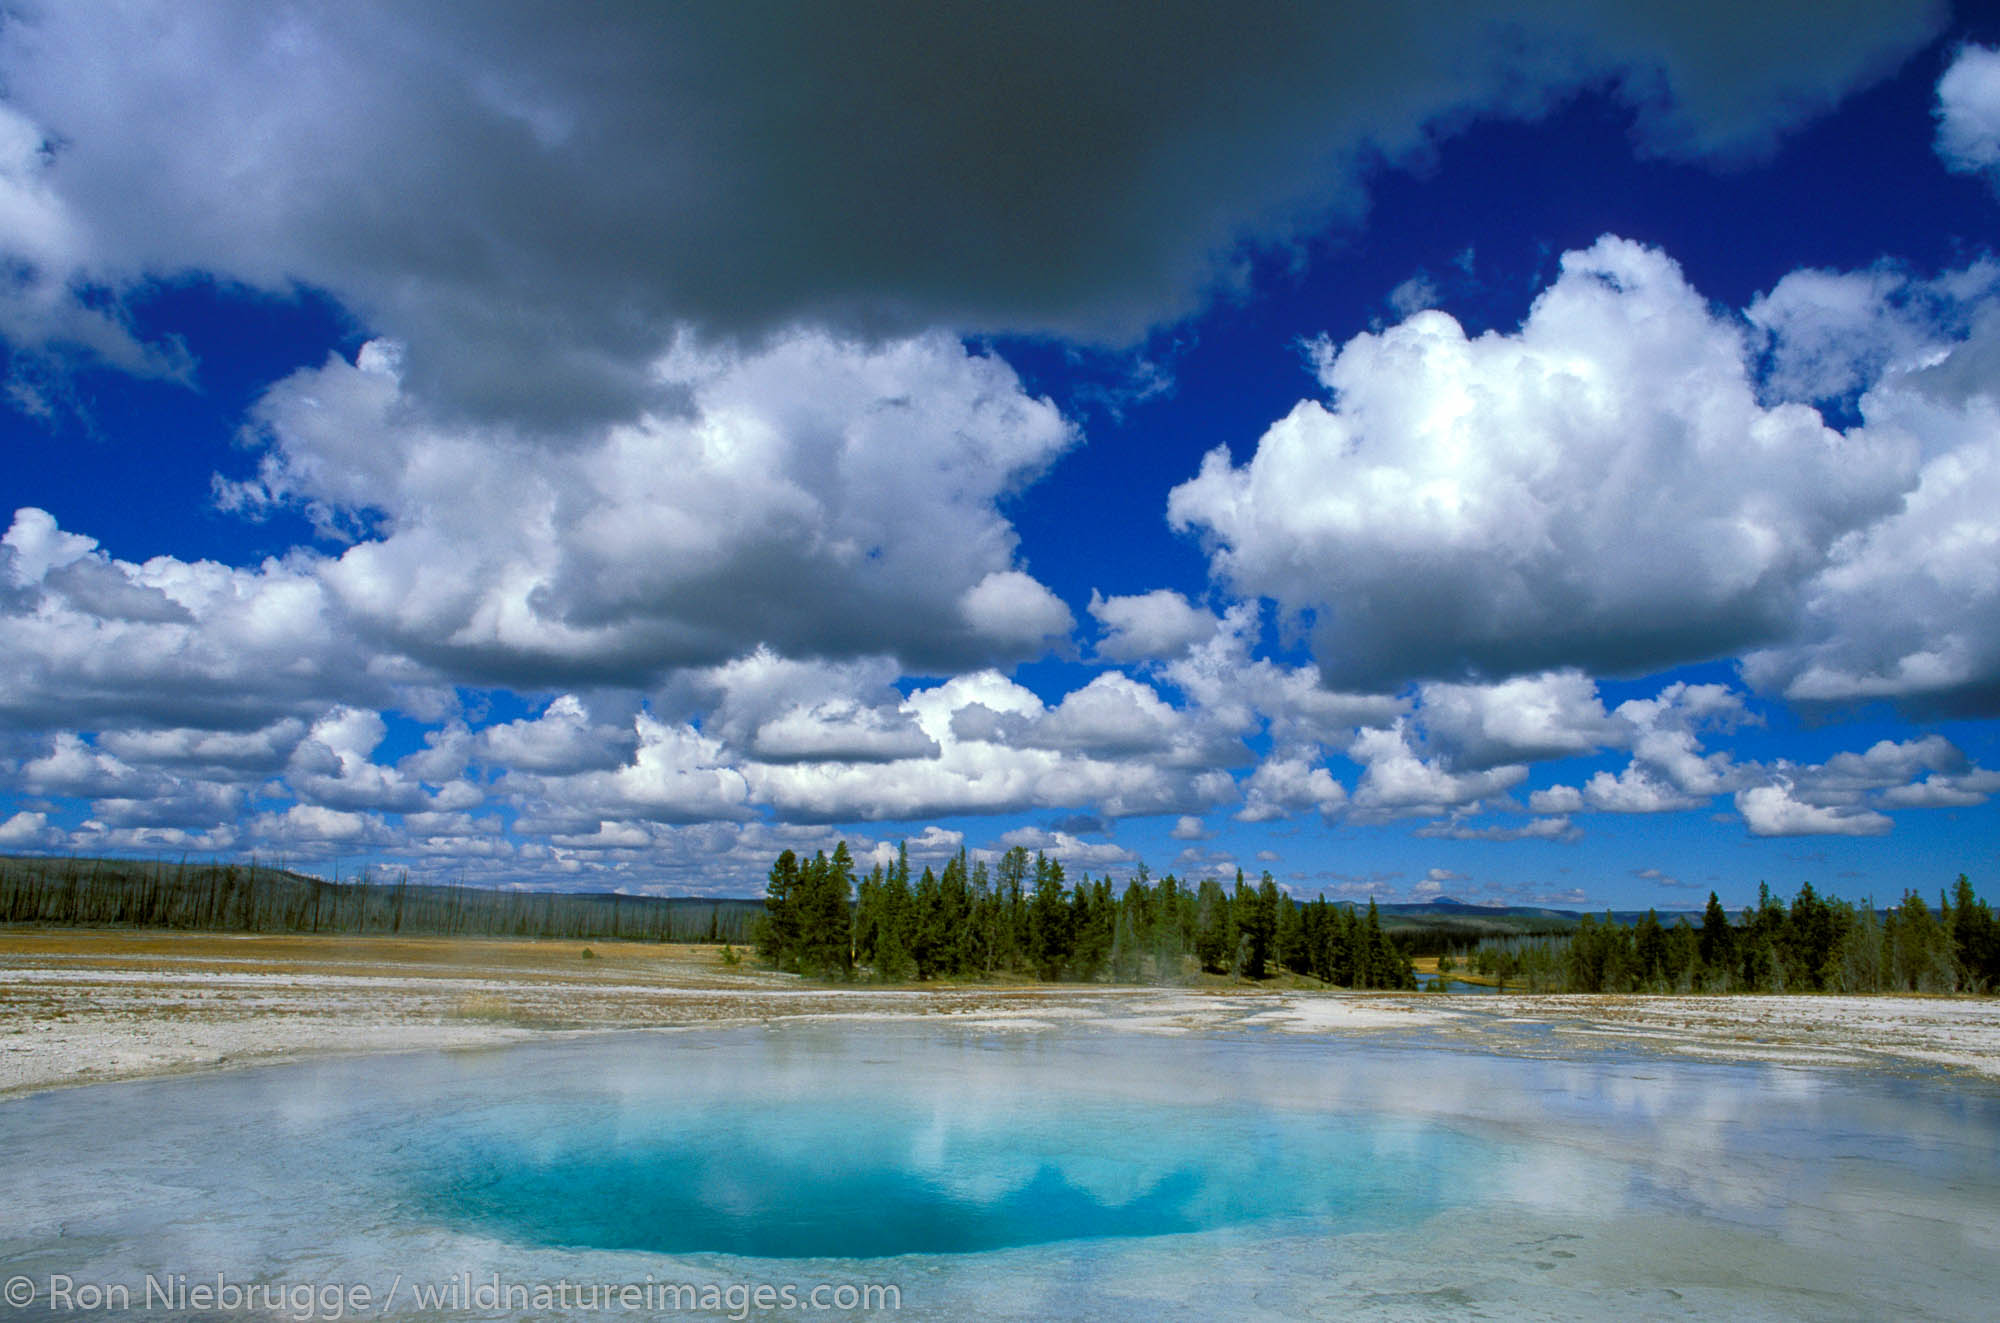 Morning Glory Pool, Midway Geyser Basin, Yellowstone National Park, Wyoming.